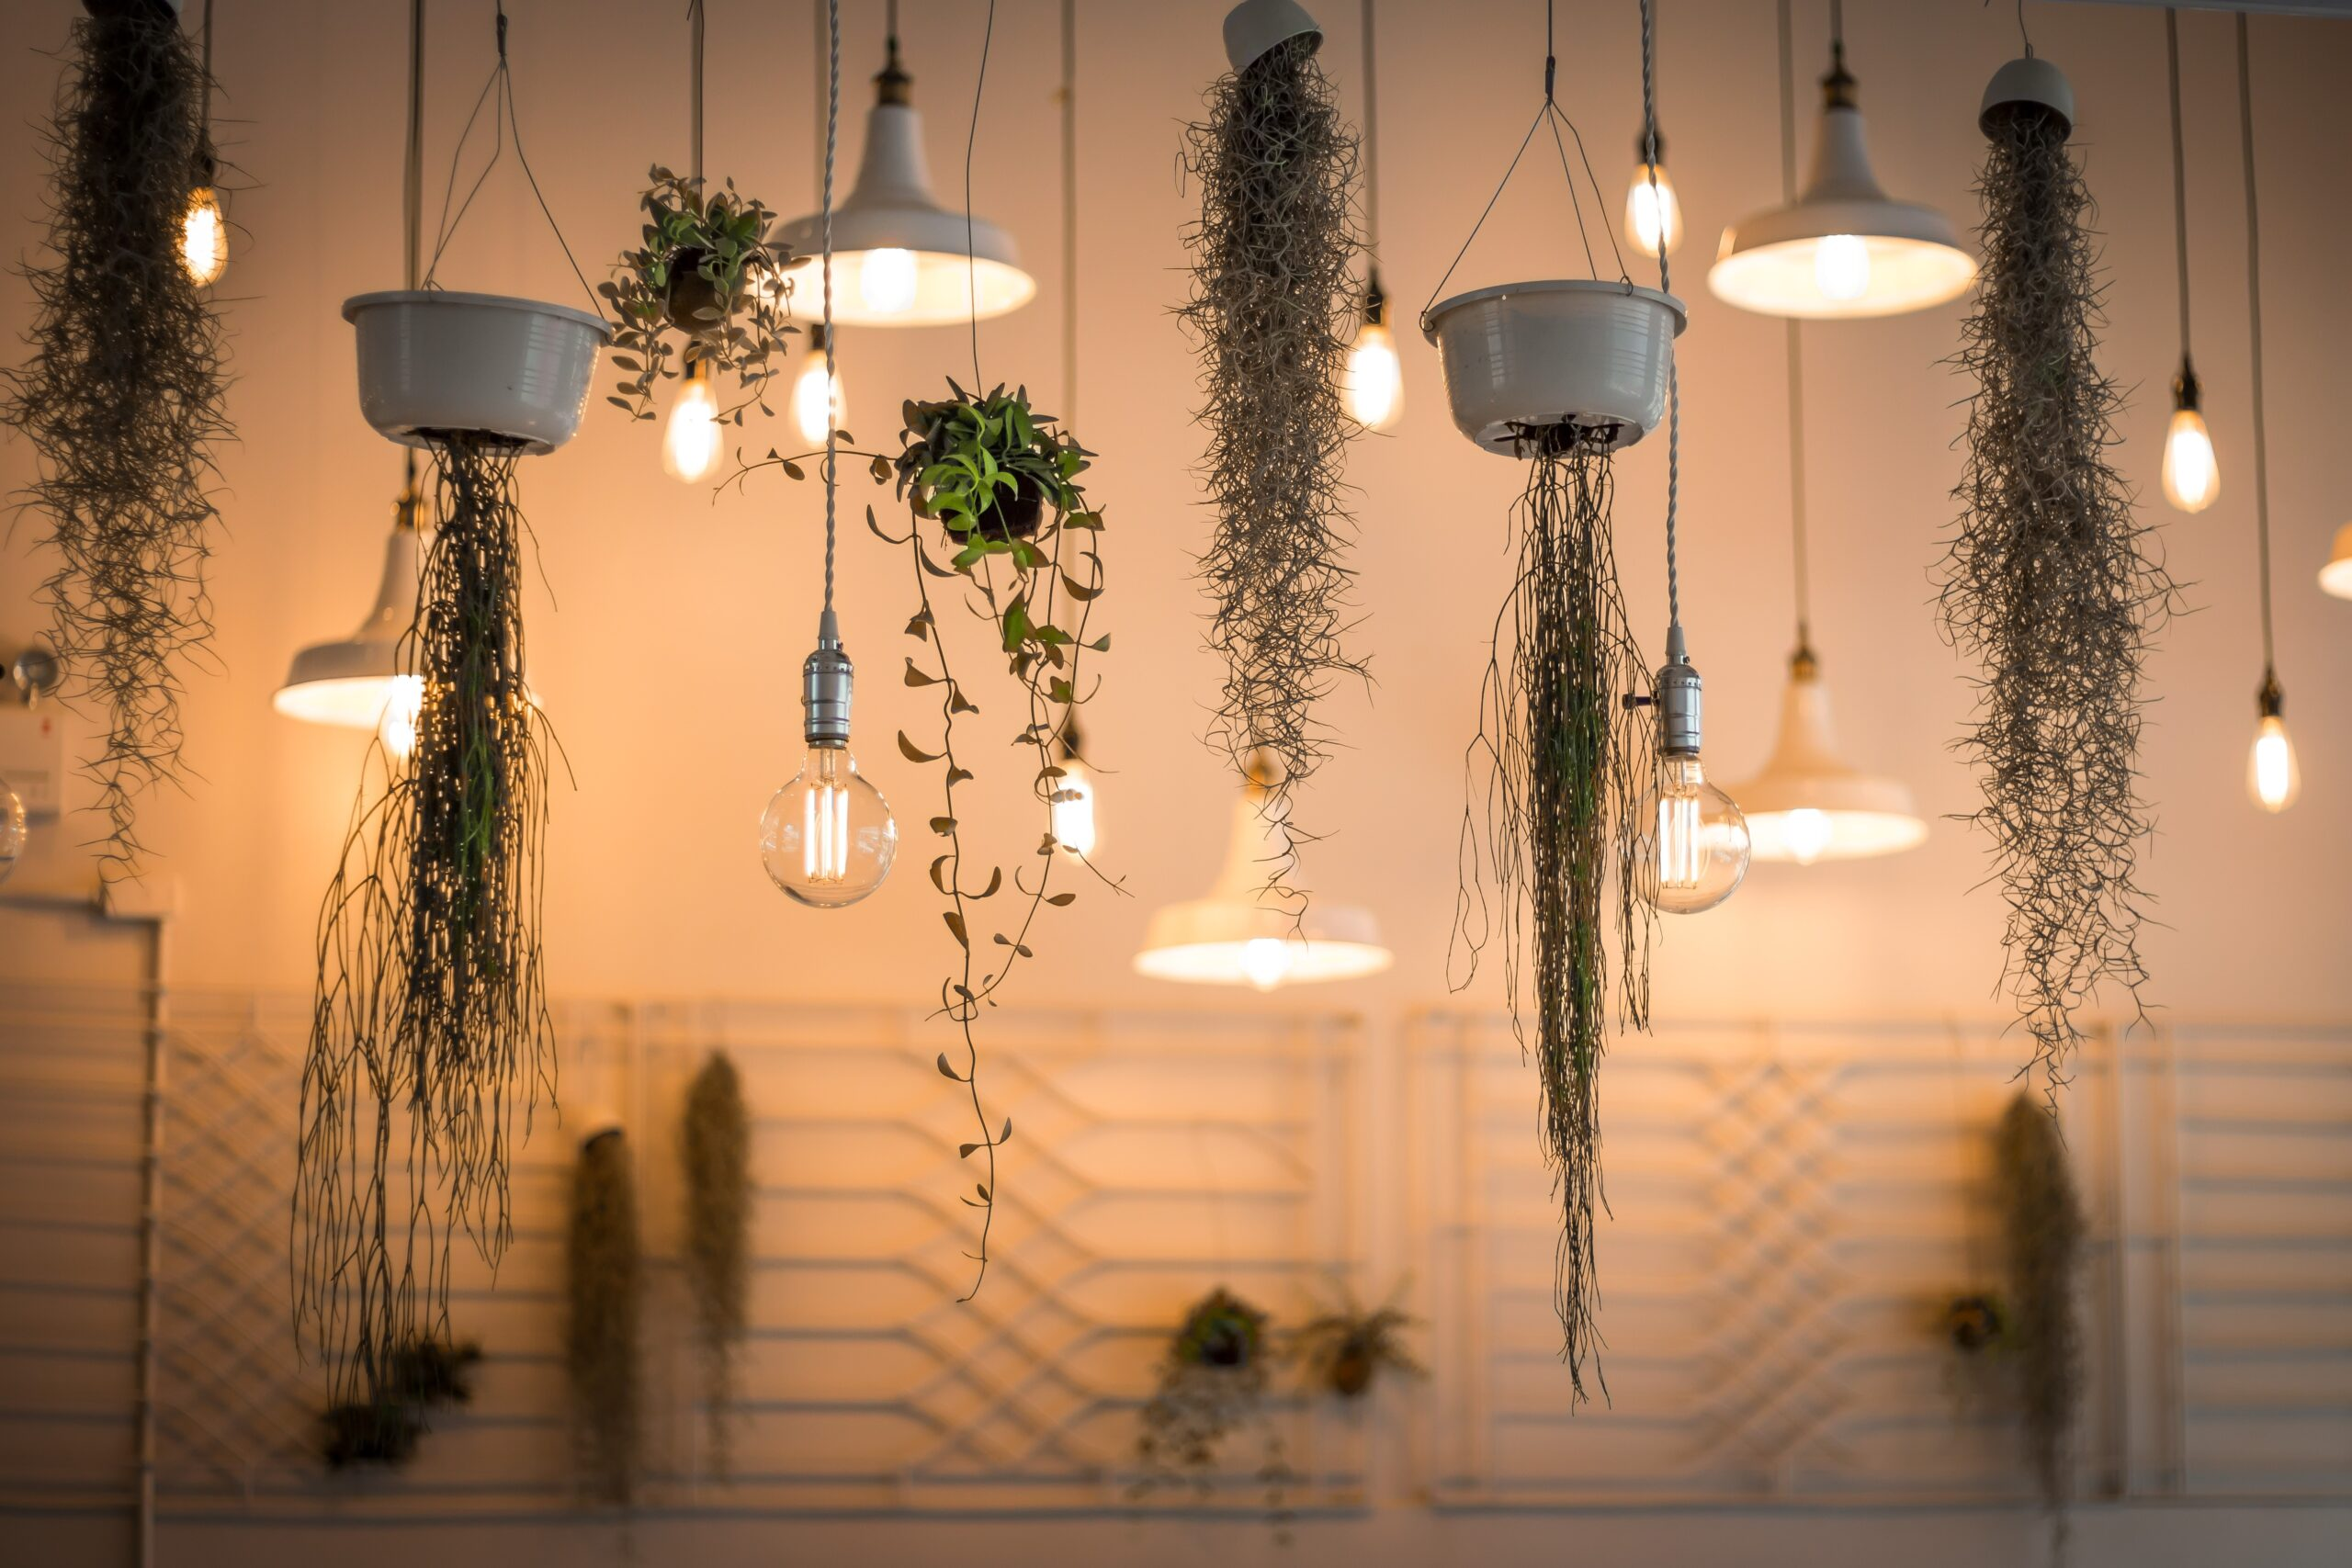 clean to a guide to indoor plants in small spaces picture of hanging plants